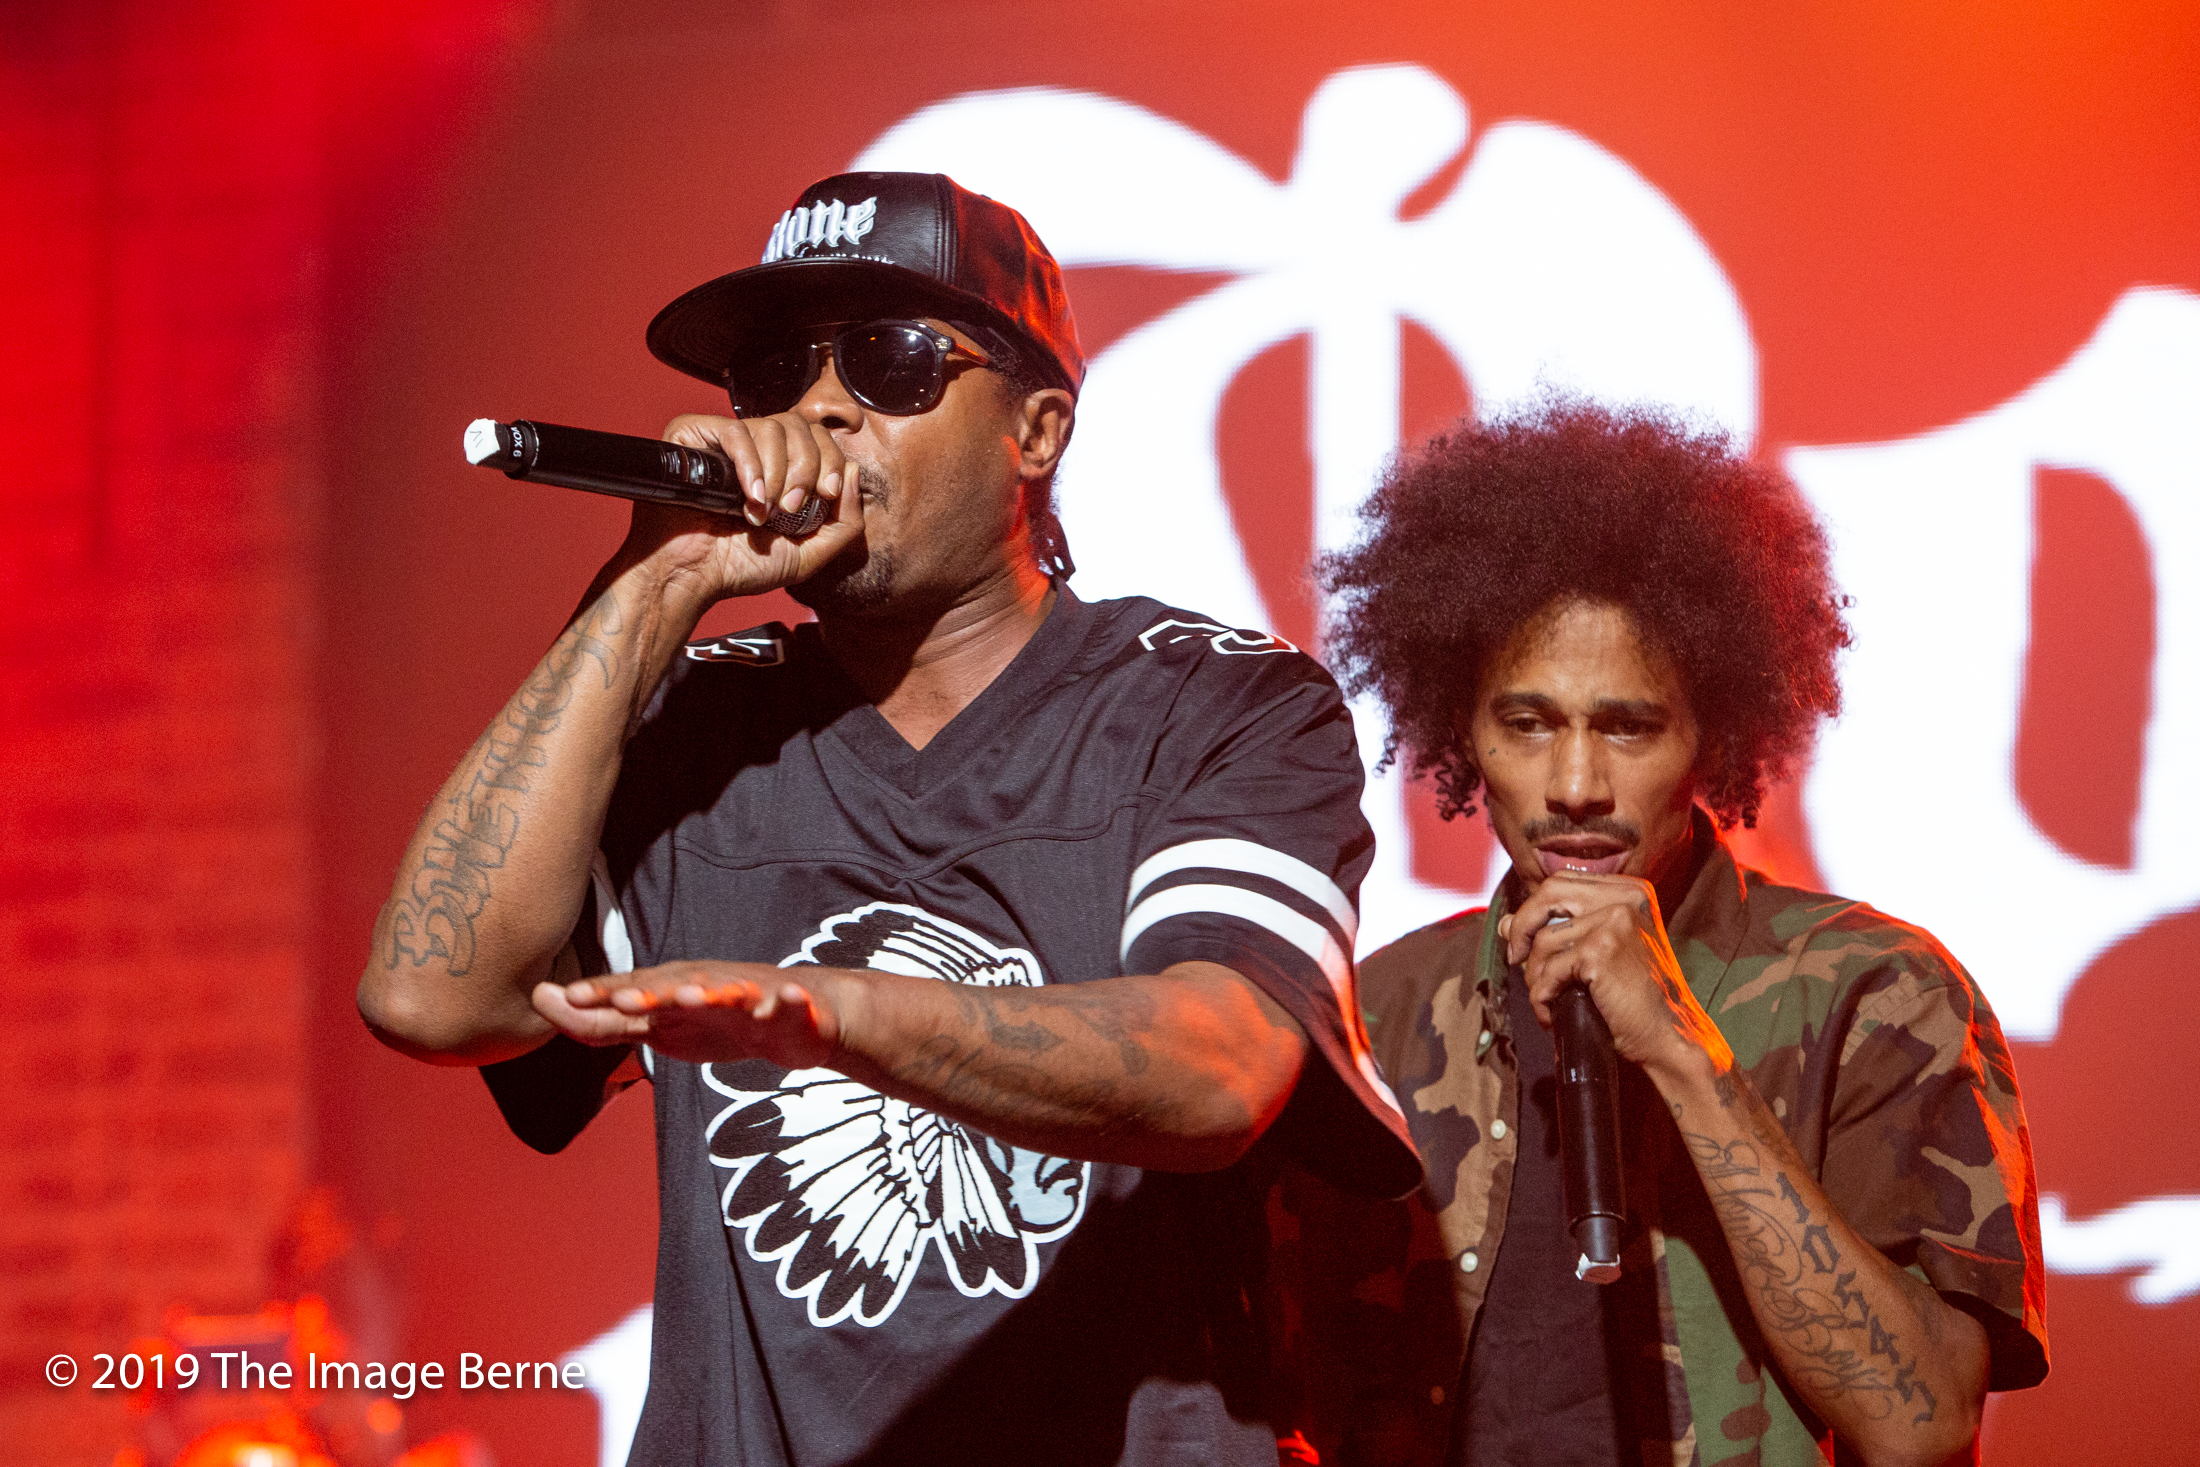 Krayzie Bone, Wish Bone, Flesh-N-Bone, Layzie Bone, and Bizzy Bone-069.jpg